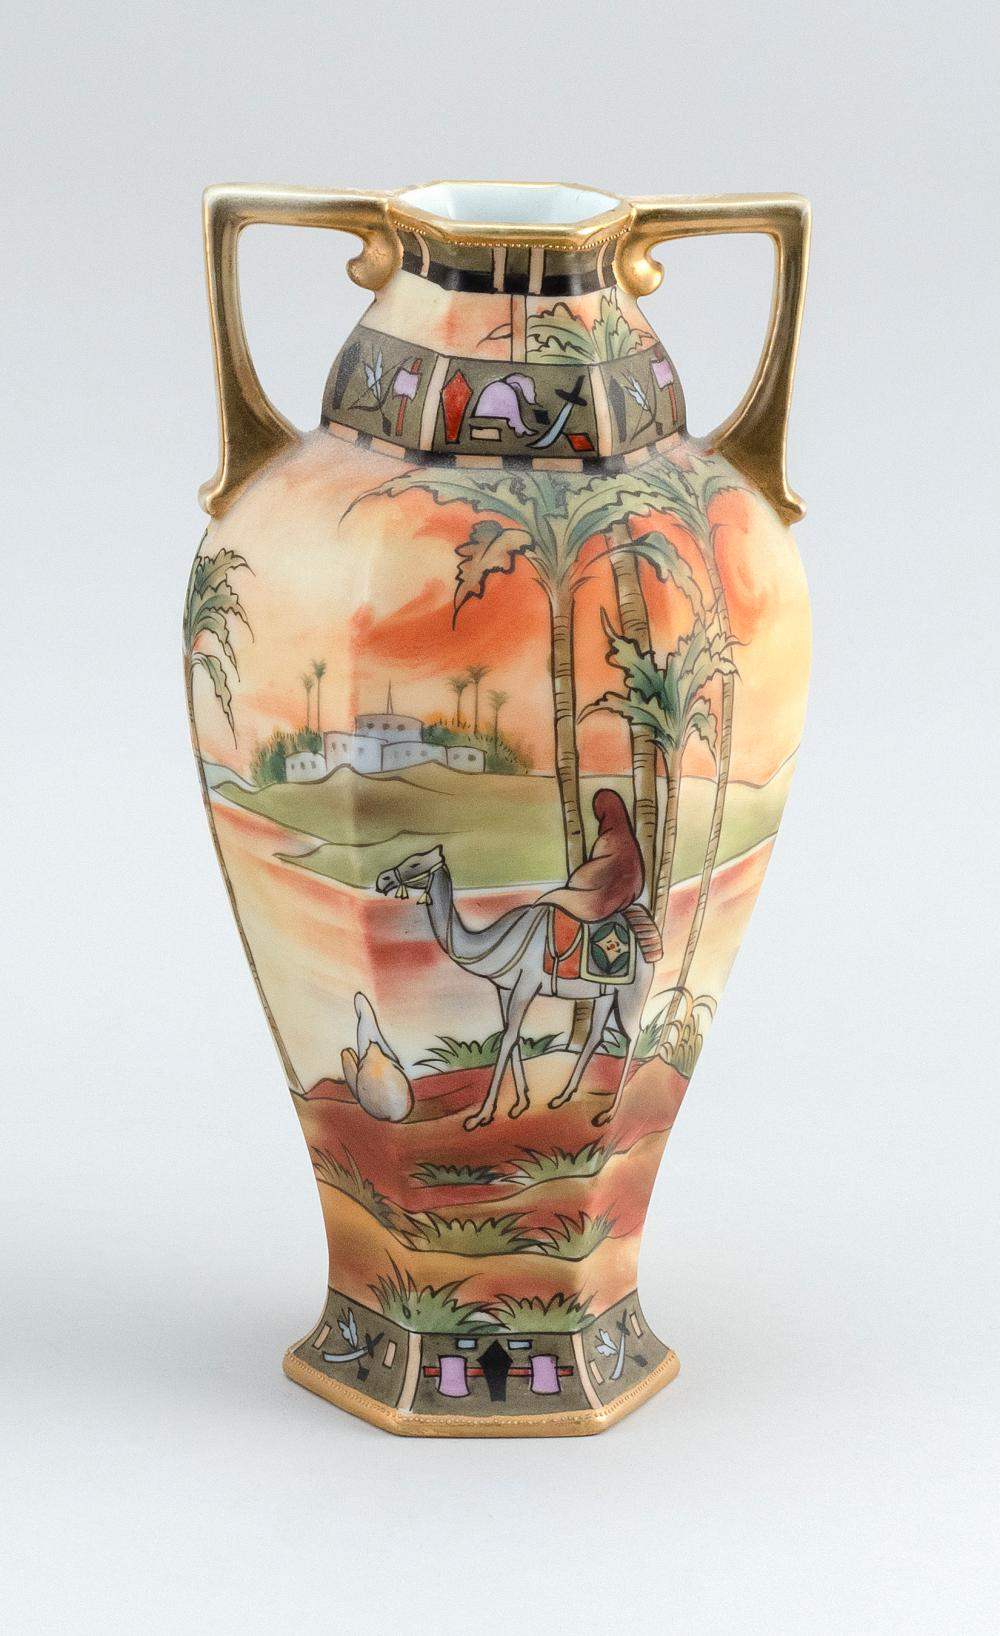 NIPPON PORCELAIN VASE Hexagonal, with openwork handles and Egyptian landscape decoration. Van Patten #47 mark on base. Height 10.3